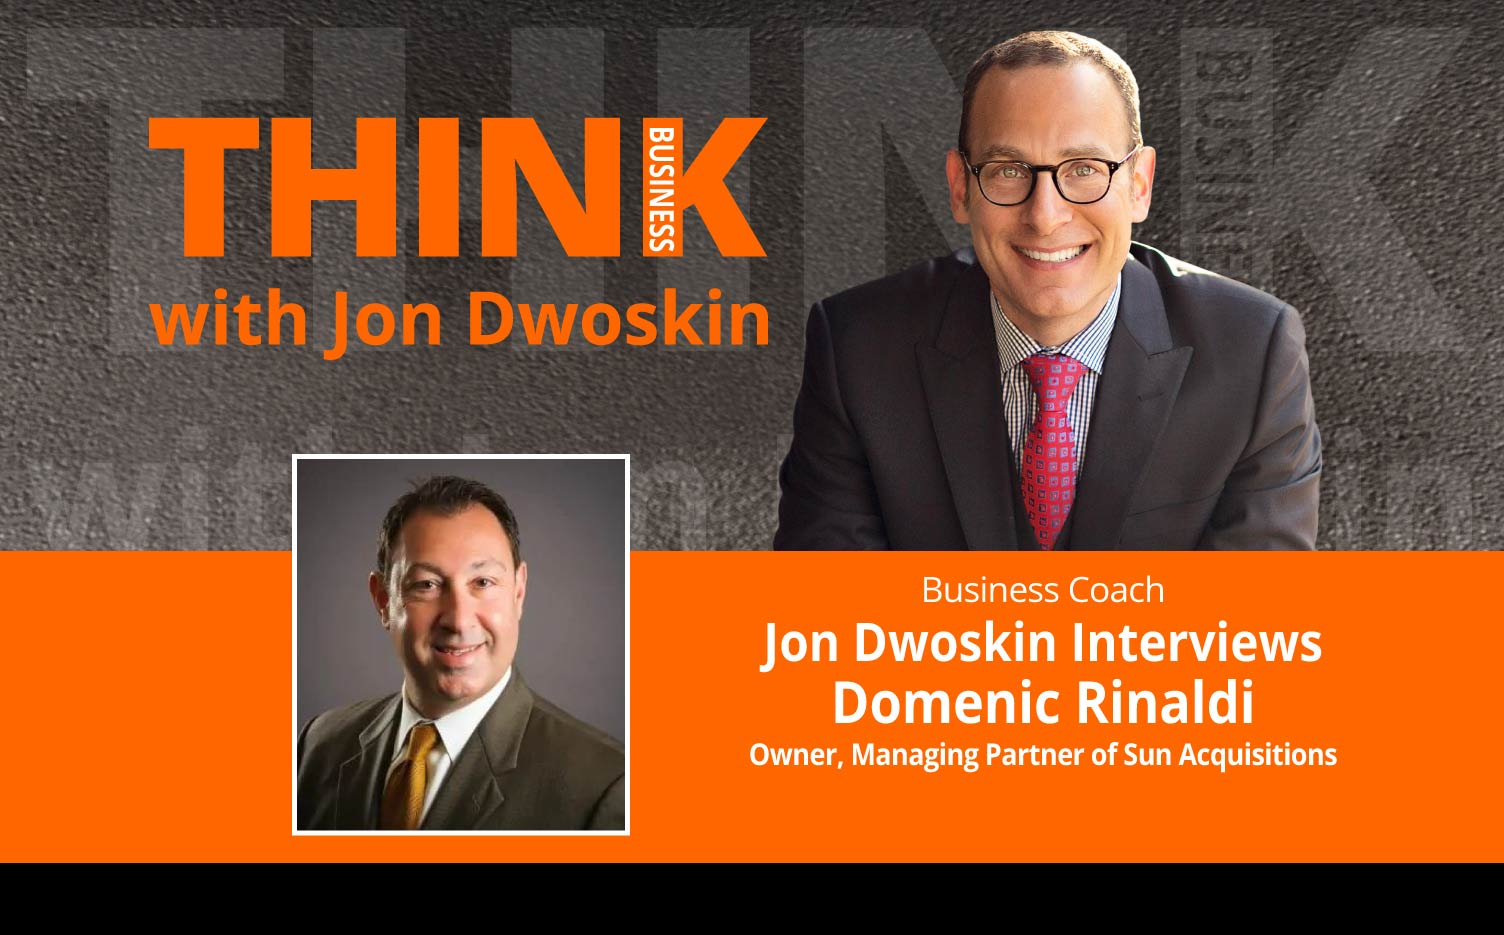 THINK Business Podcast: Jon Dwoskin Interviews Domenic Rinaldi, Owner, Managing Partner of Sun Acquisitions